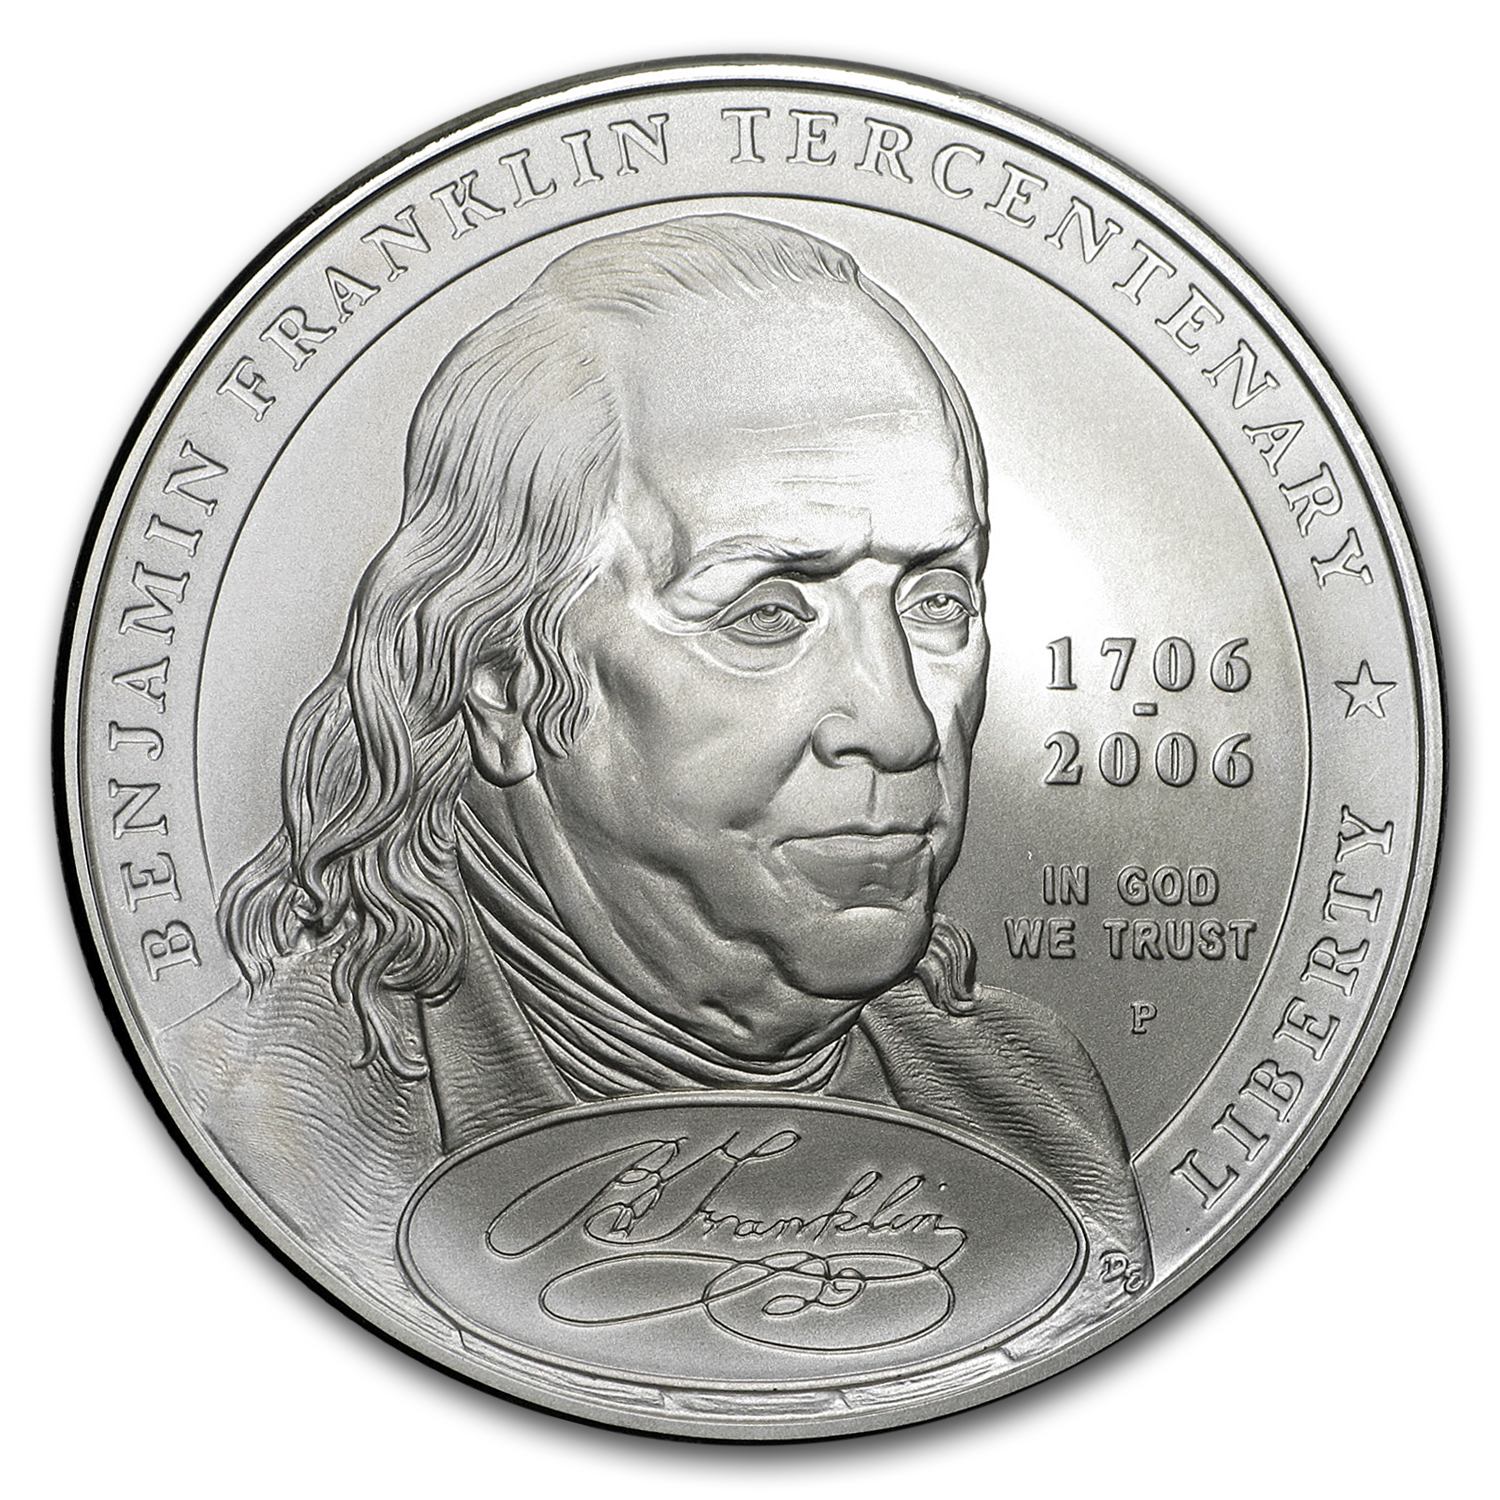 2006-P Ben Franklin Founding Father $1 Silver Commem BU (Box/COA)